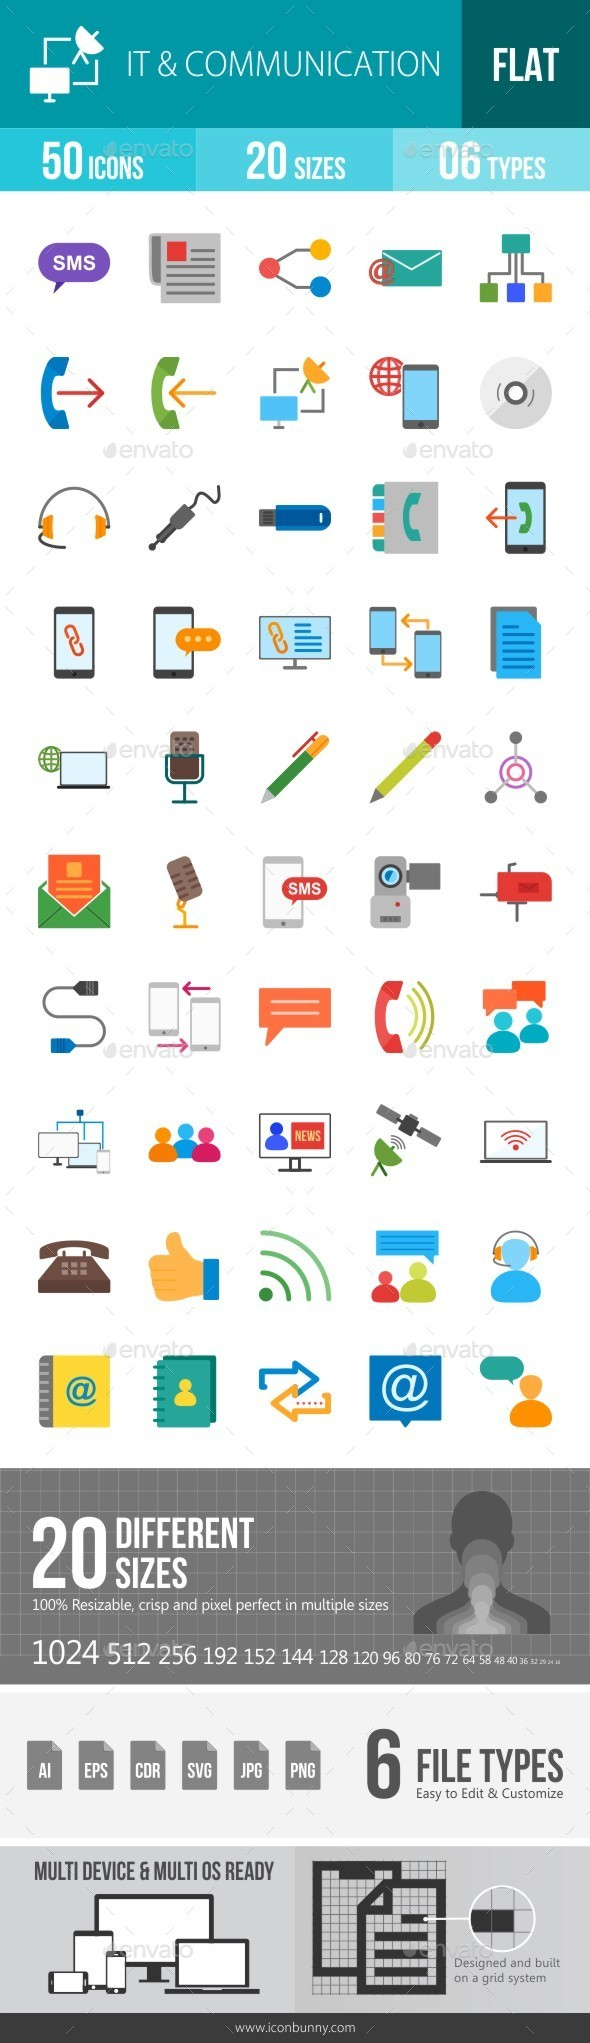 IT & Communication Flat Multicolor Icons - Icons